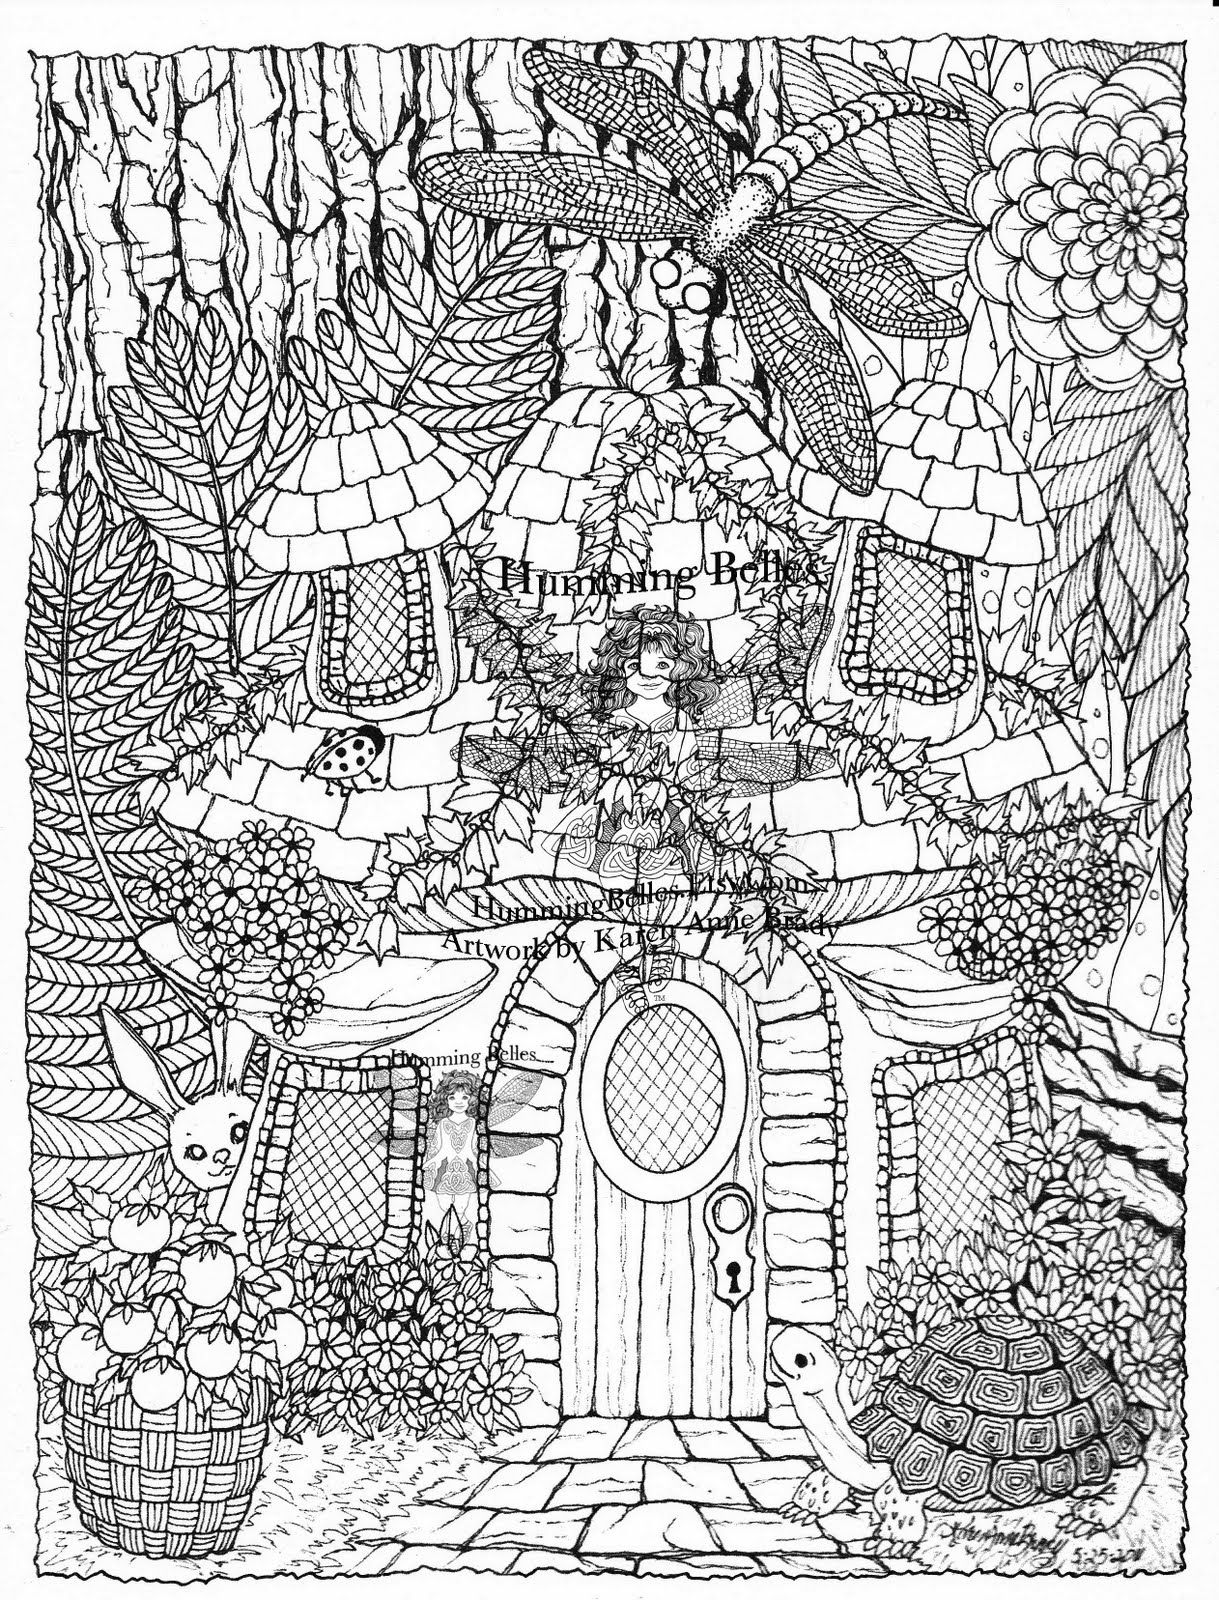 Pinterest christmas adult coloring pages - Detailed Coloring Pages For Adults Irelandbrady Musings To Ponder Humming Belles